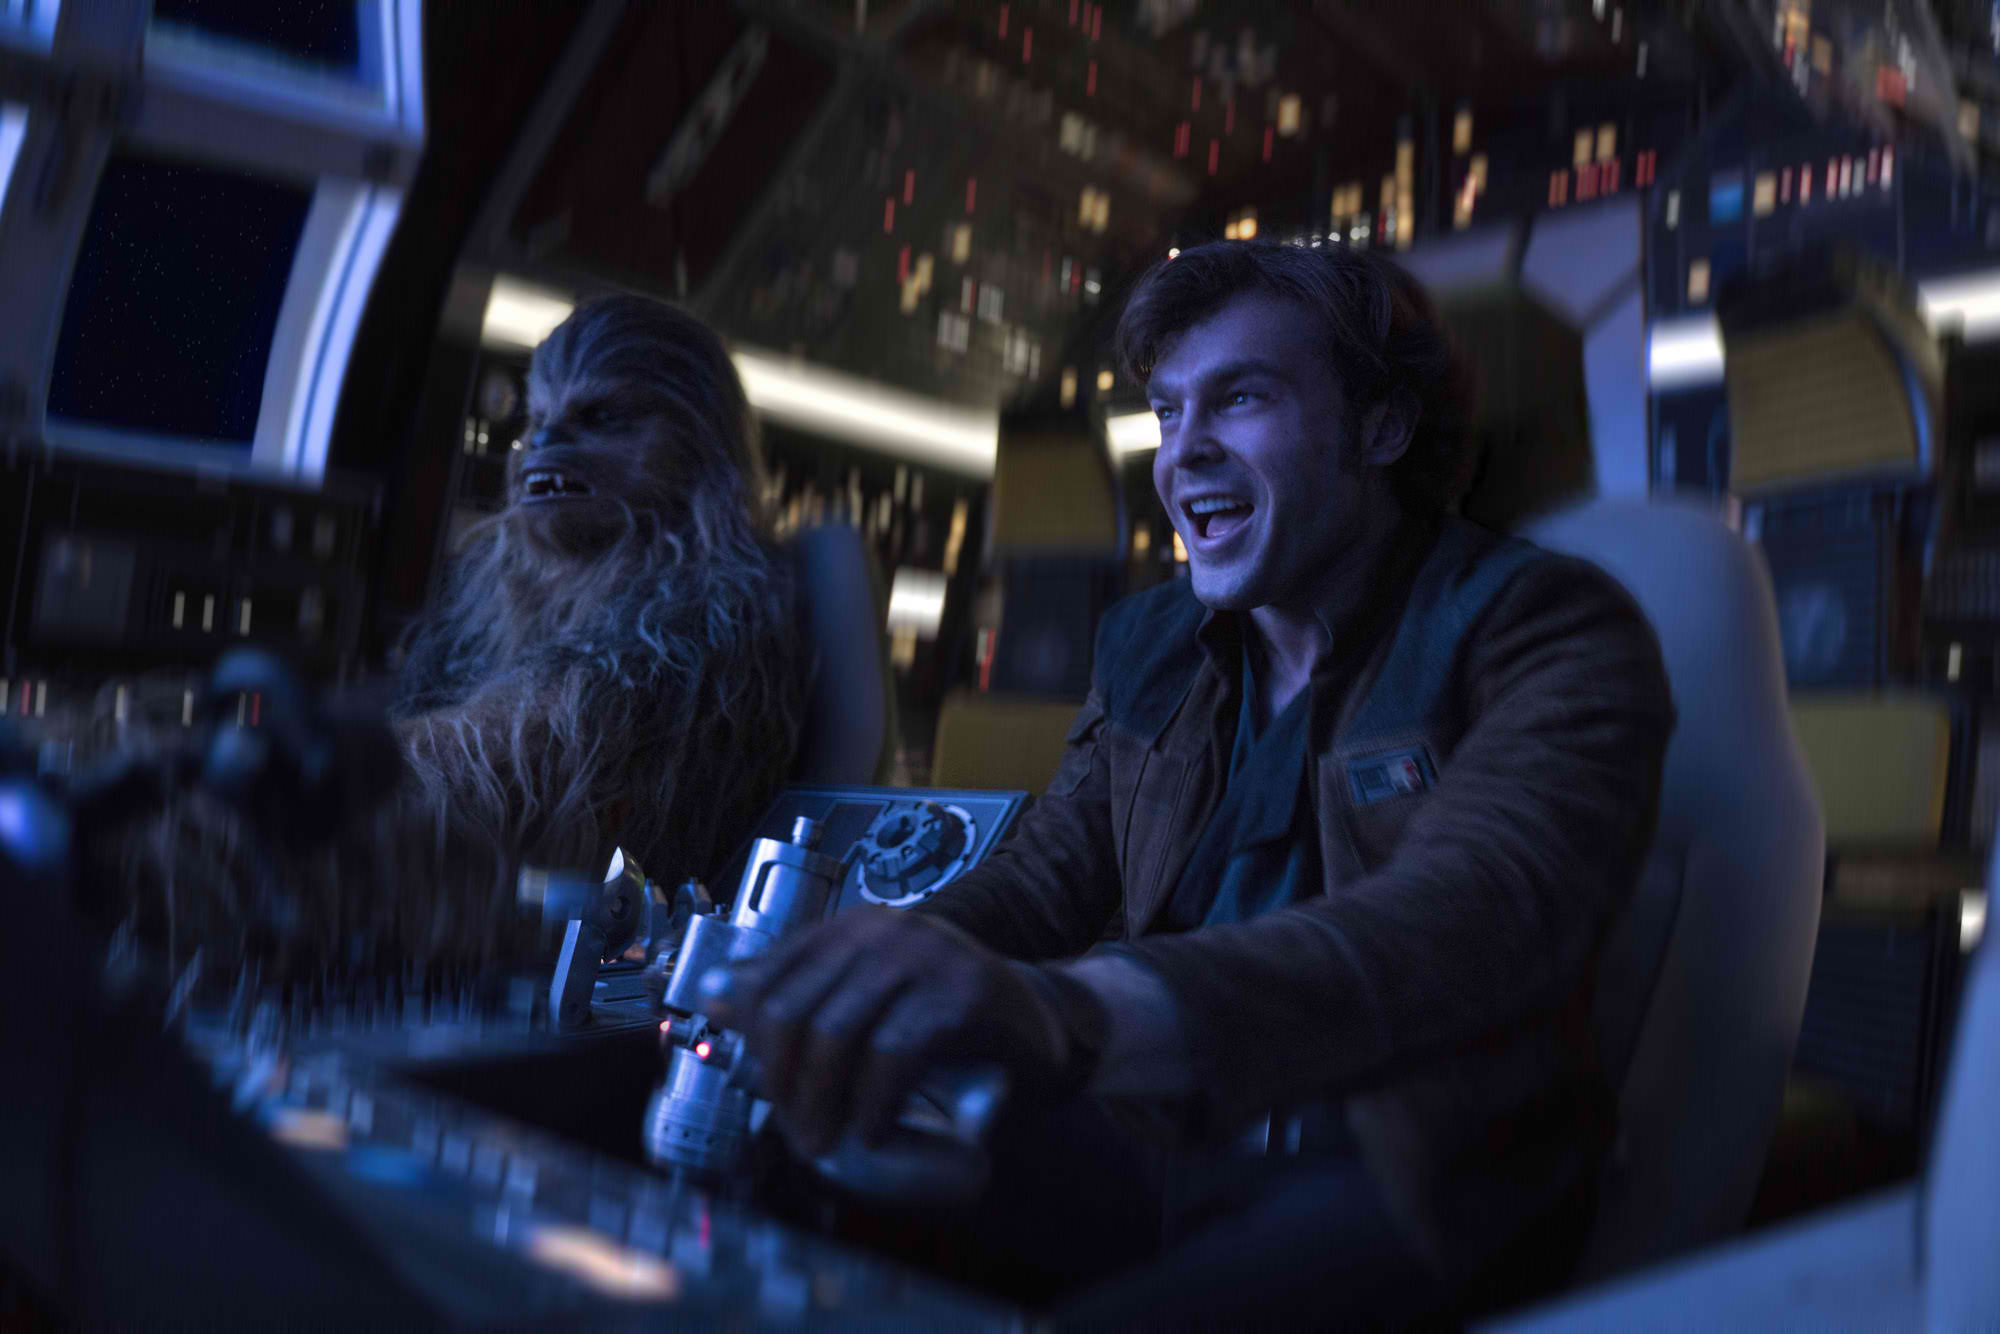 PARTNERS. Han and his partner Chewbacca take on an adventure of a lifetime.